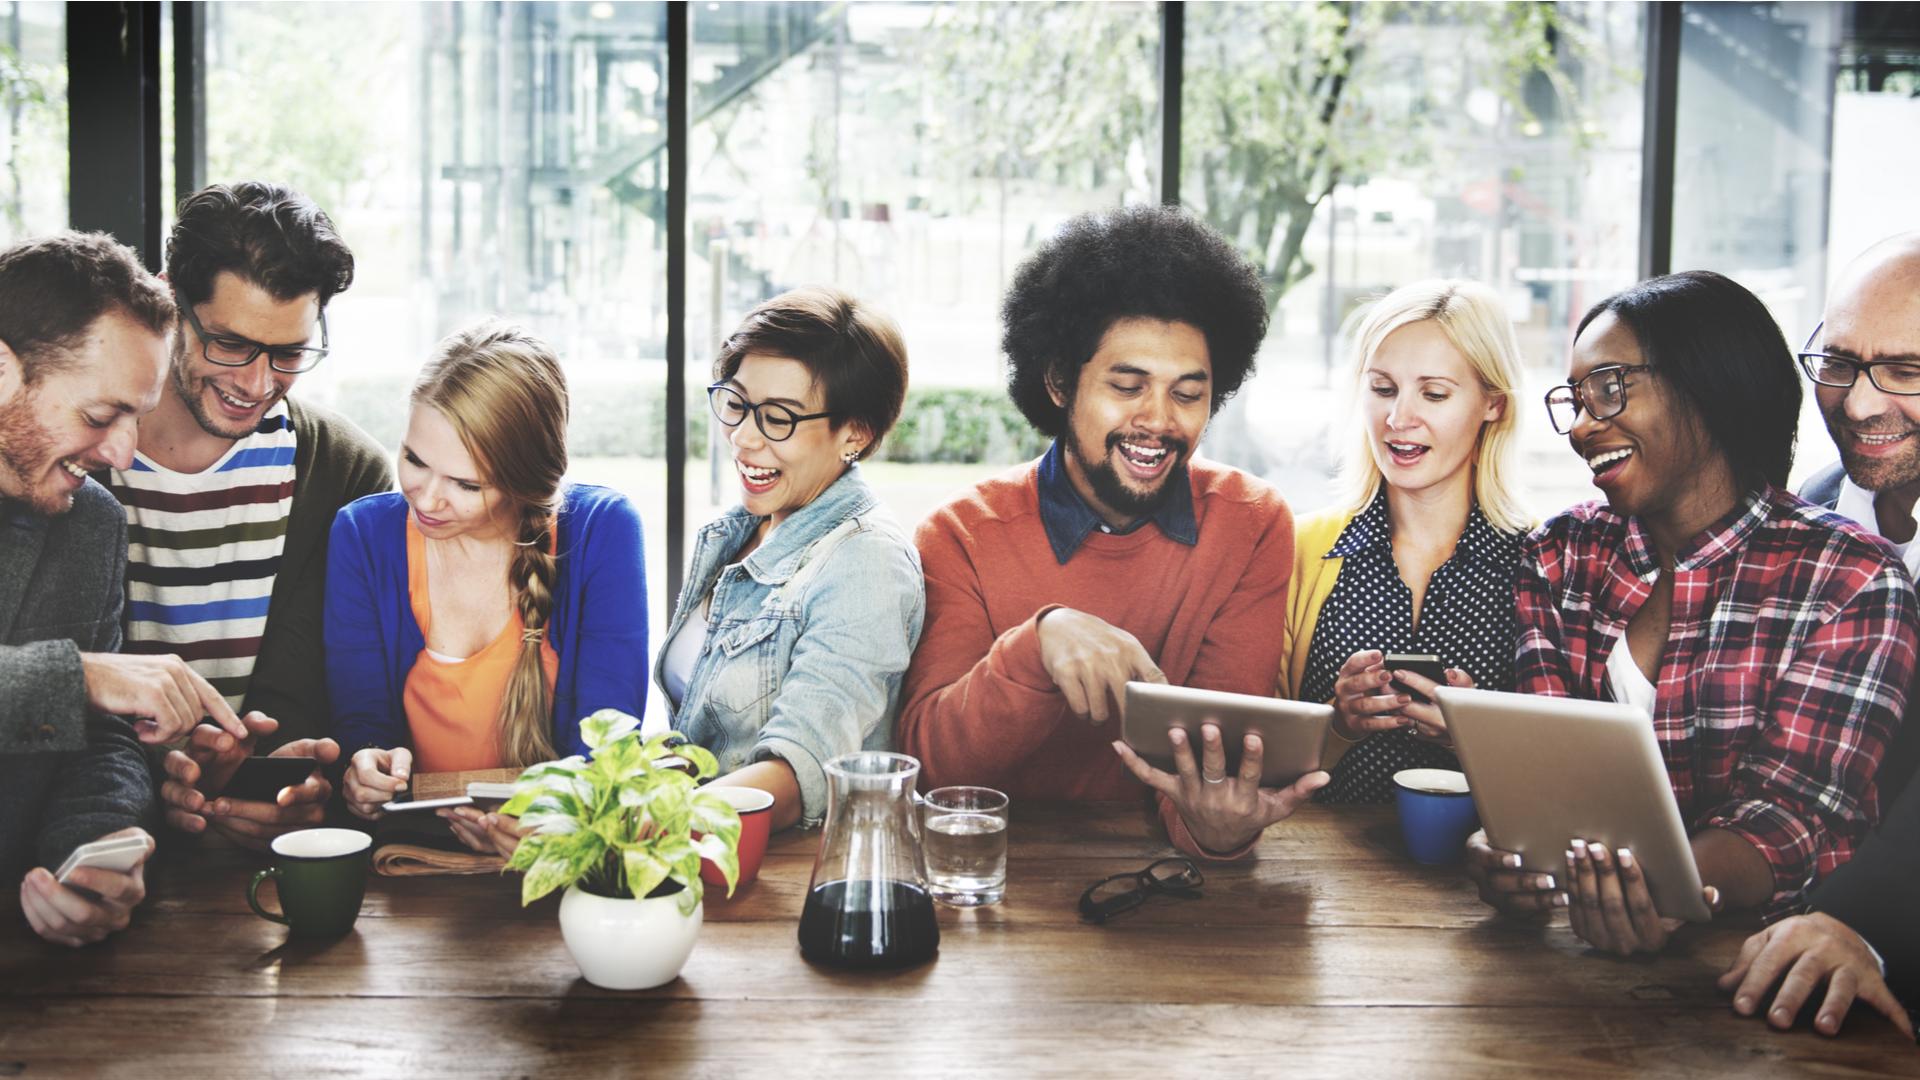 How to Build an Online Community: Best Practices